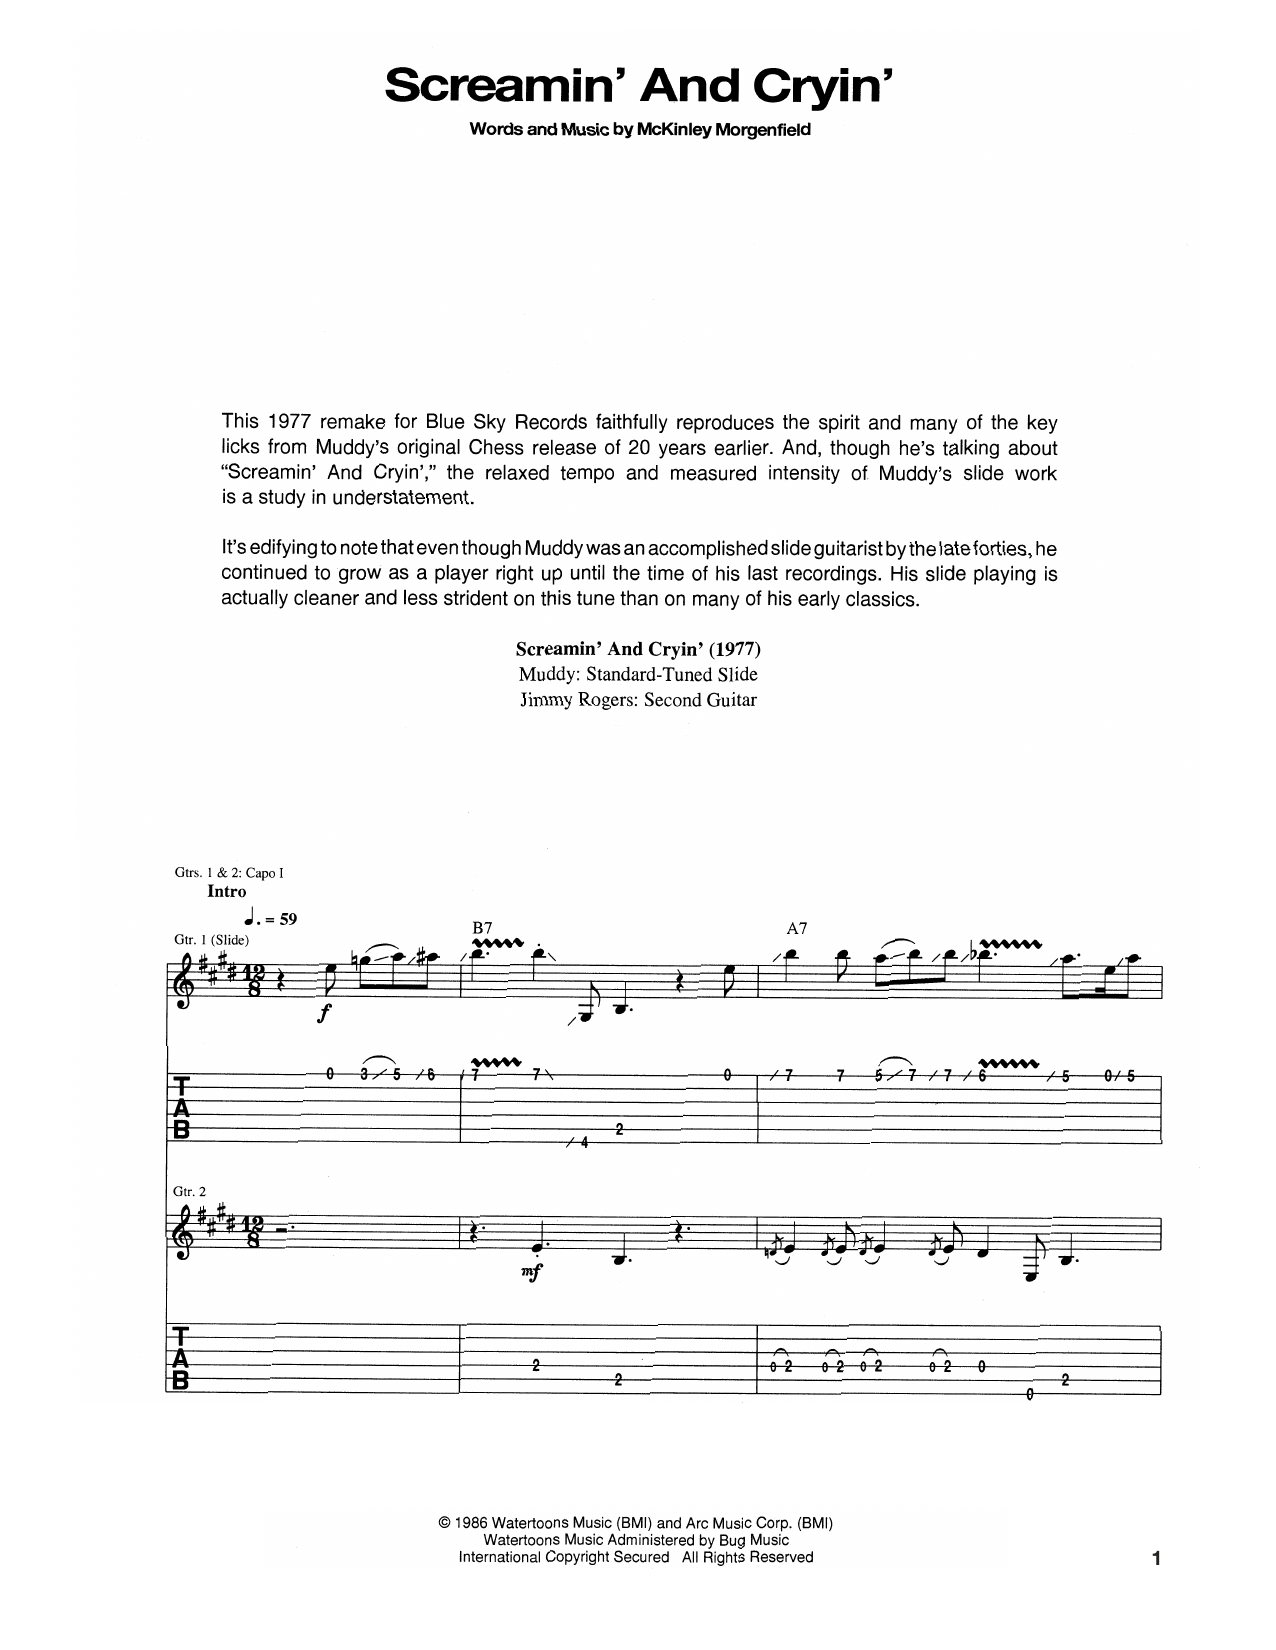 Screamin' And Cryin' Sheet Music